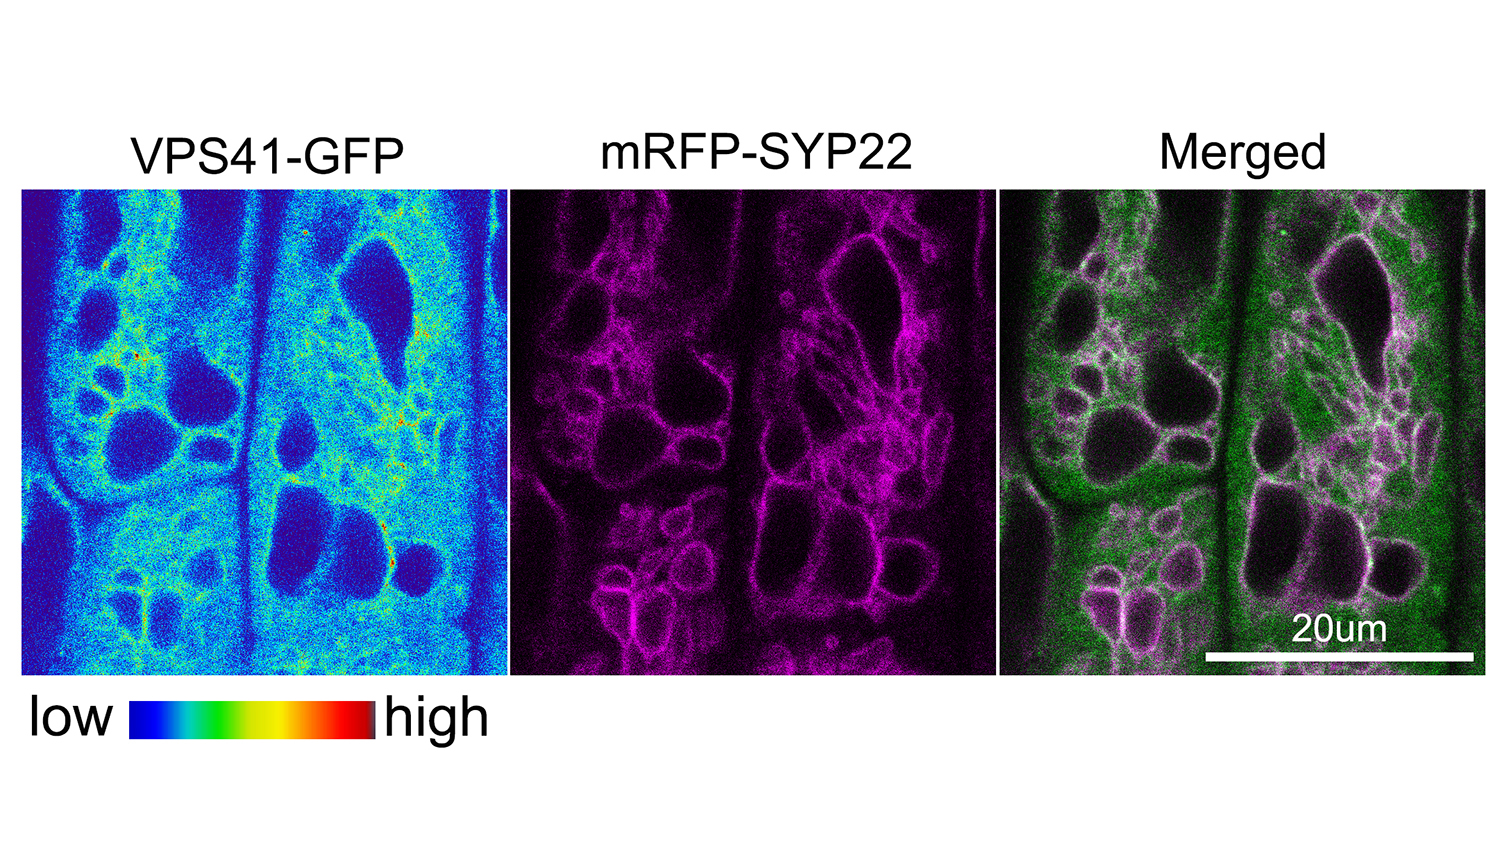 Accumulation of the HOPS subunit VPS41 at the vacuole membrane where it overlaps with the membrane marker SYP22.